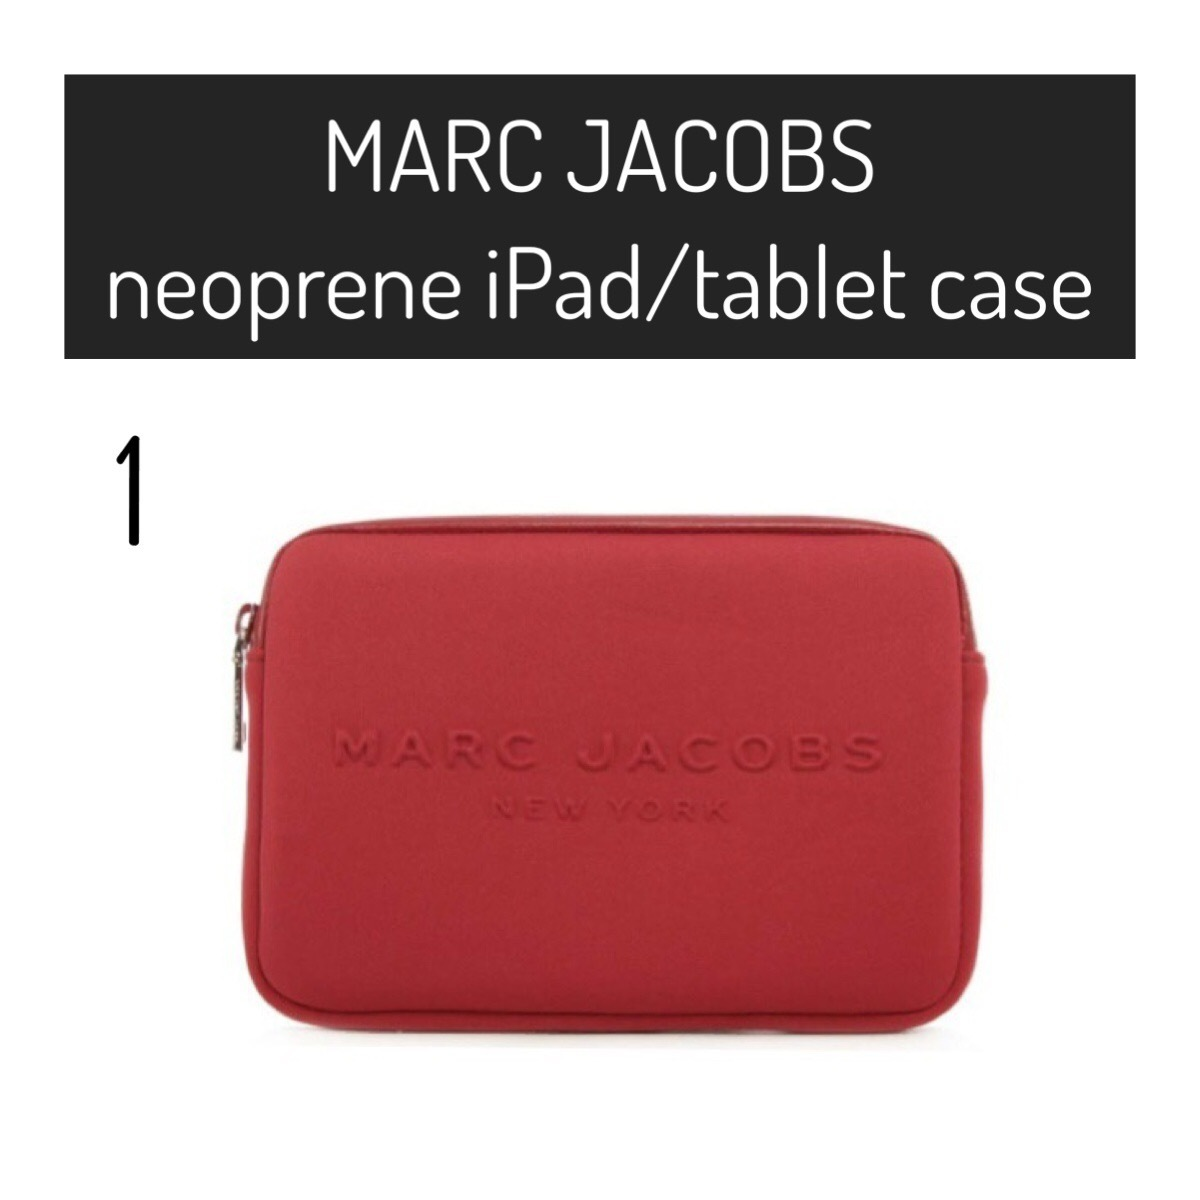 MARC JACOBS / iPad/Tablet Case / Neoprene ネオプレン